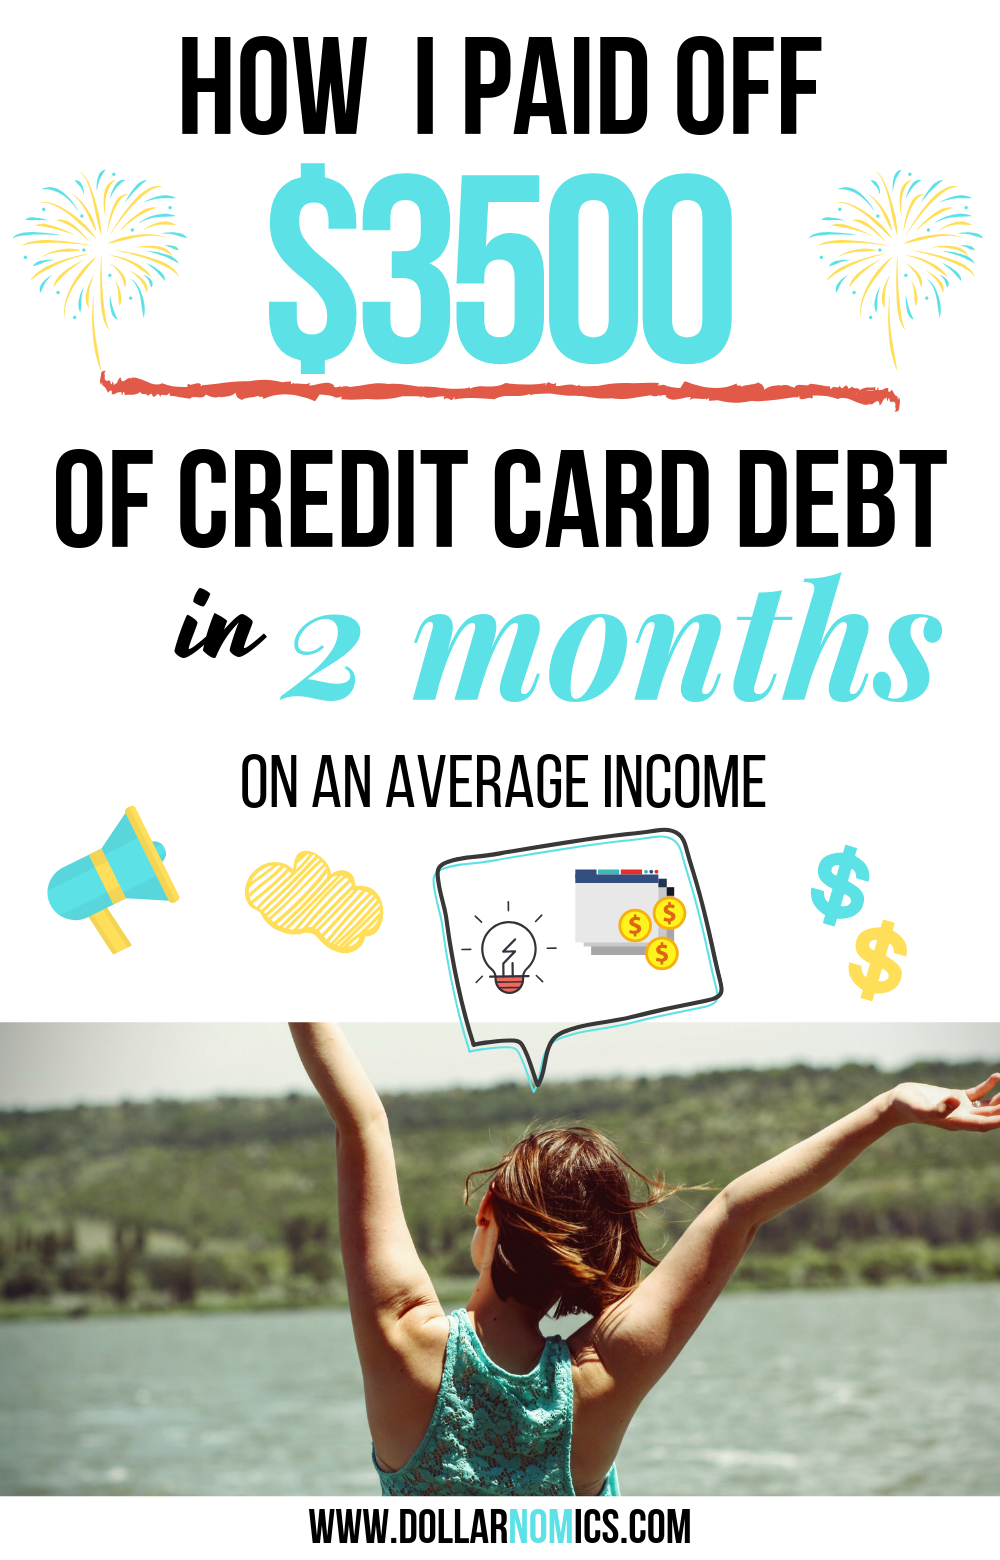 Dave Ramsey Baby Steps Discover How I Paid Off 3500 Of Credit Card Debt In Less Than 3 Months He In 2020 Paying Off Credit Cards Credit Card Website Credit Cards Debt